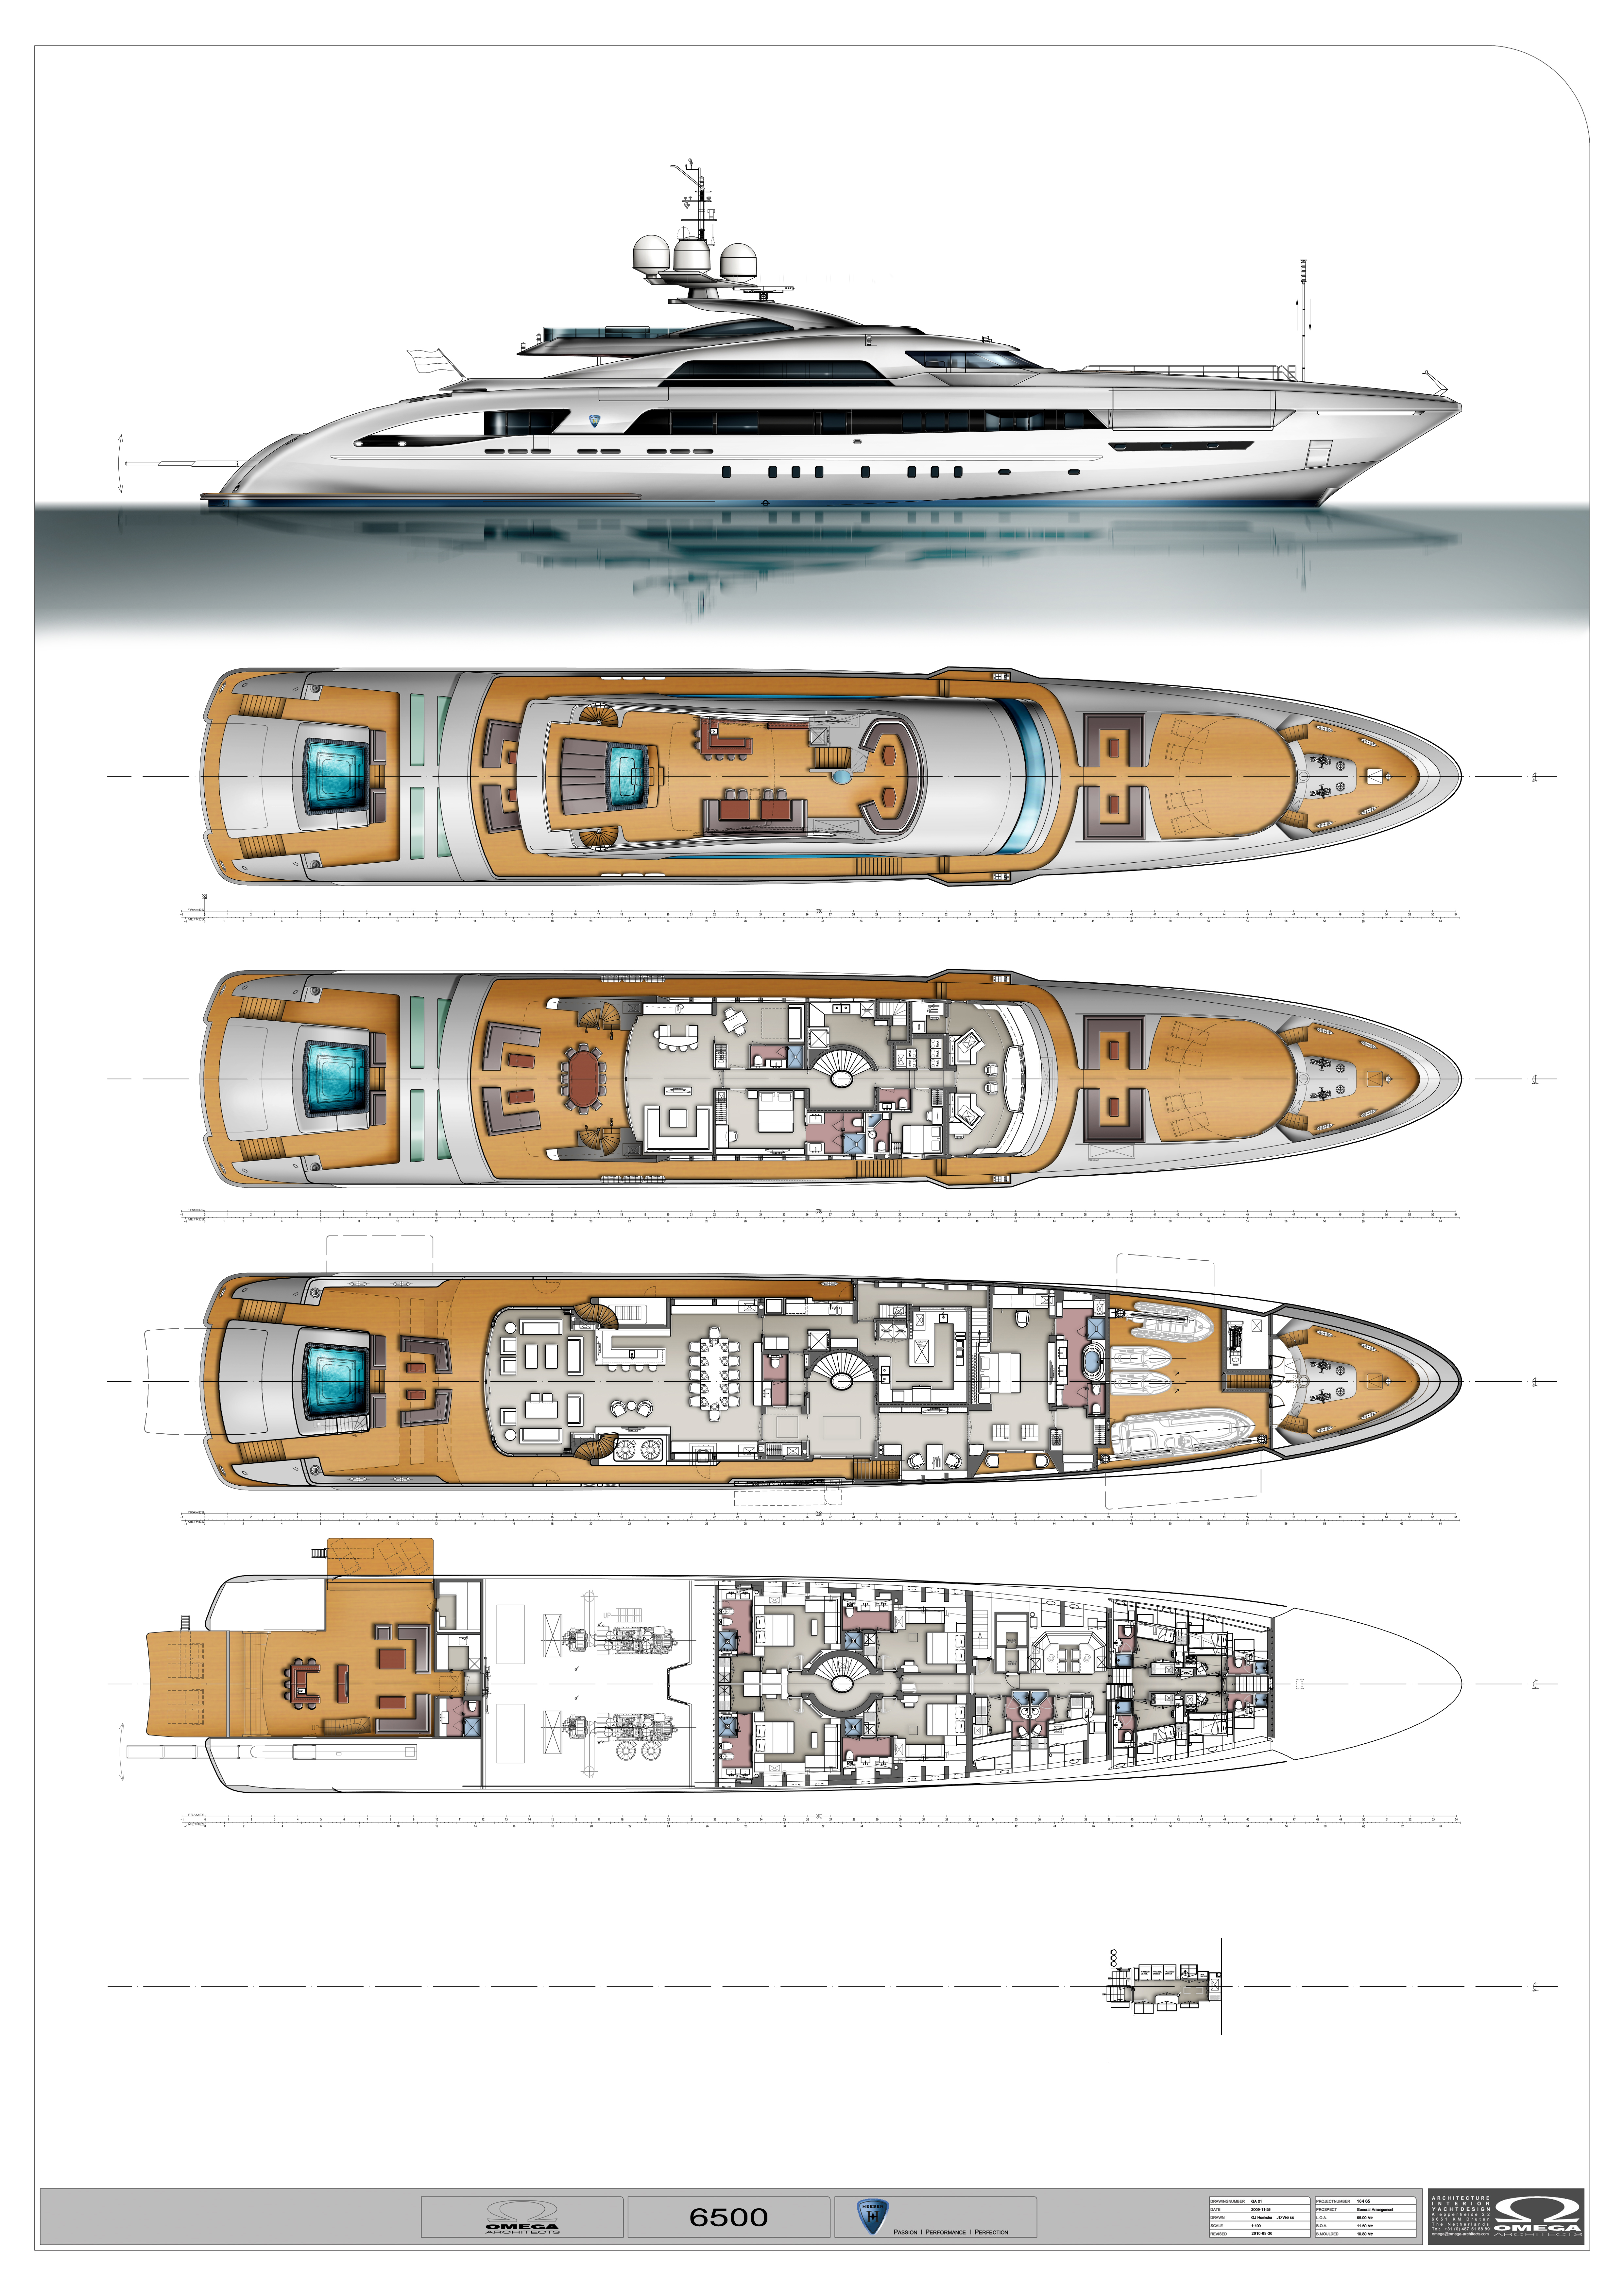 This extraordinary yacht is likely to set a new bar for style, design ...